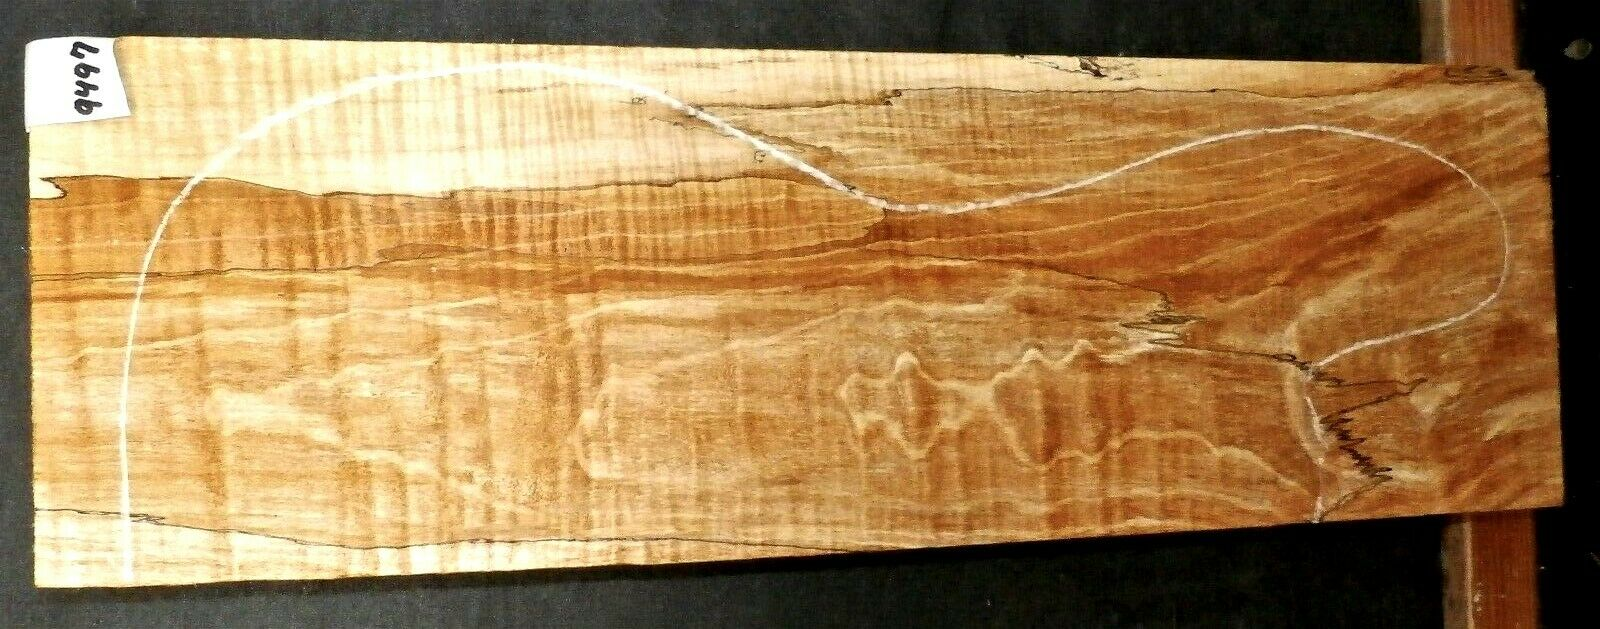 Flame Spalted Maple Instrument Wood  9497 Luthier Guitar Lumber  22.5x 7.25x 3